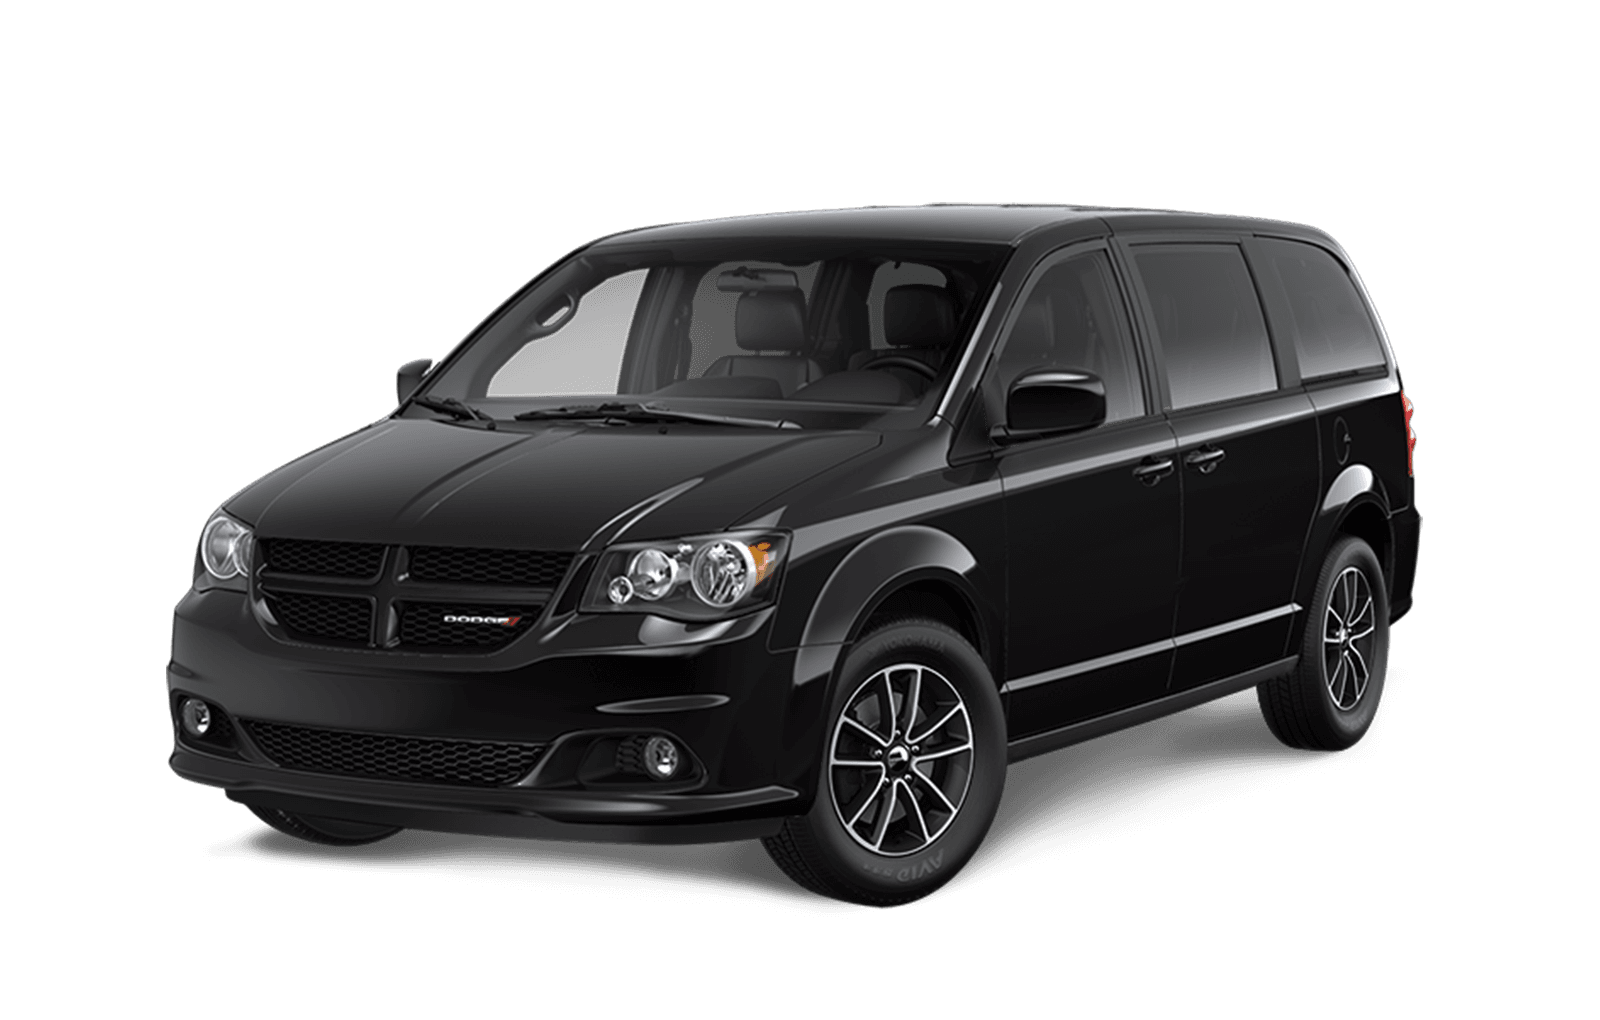 62 Great 2020 Dodge Grand Caravan Gt Model by 2020 Dodge Grand Caravan Gt